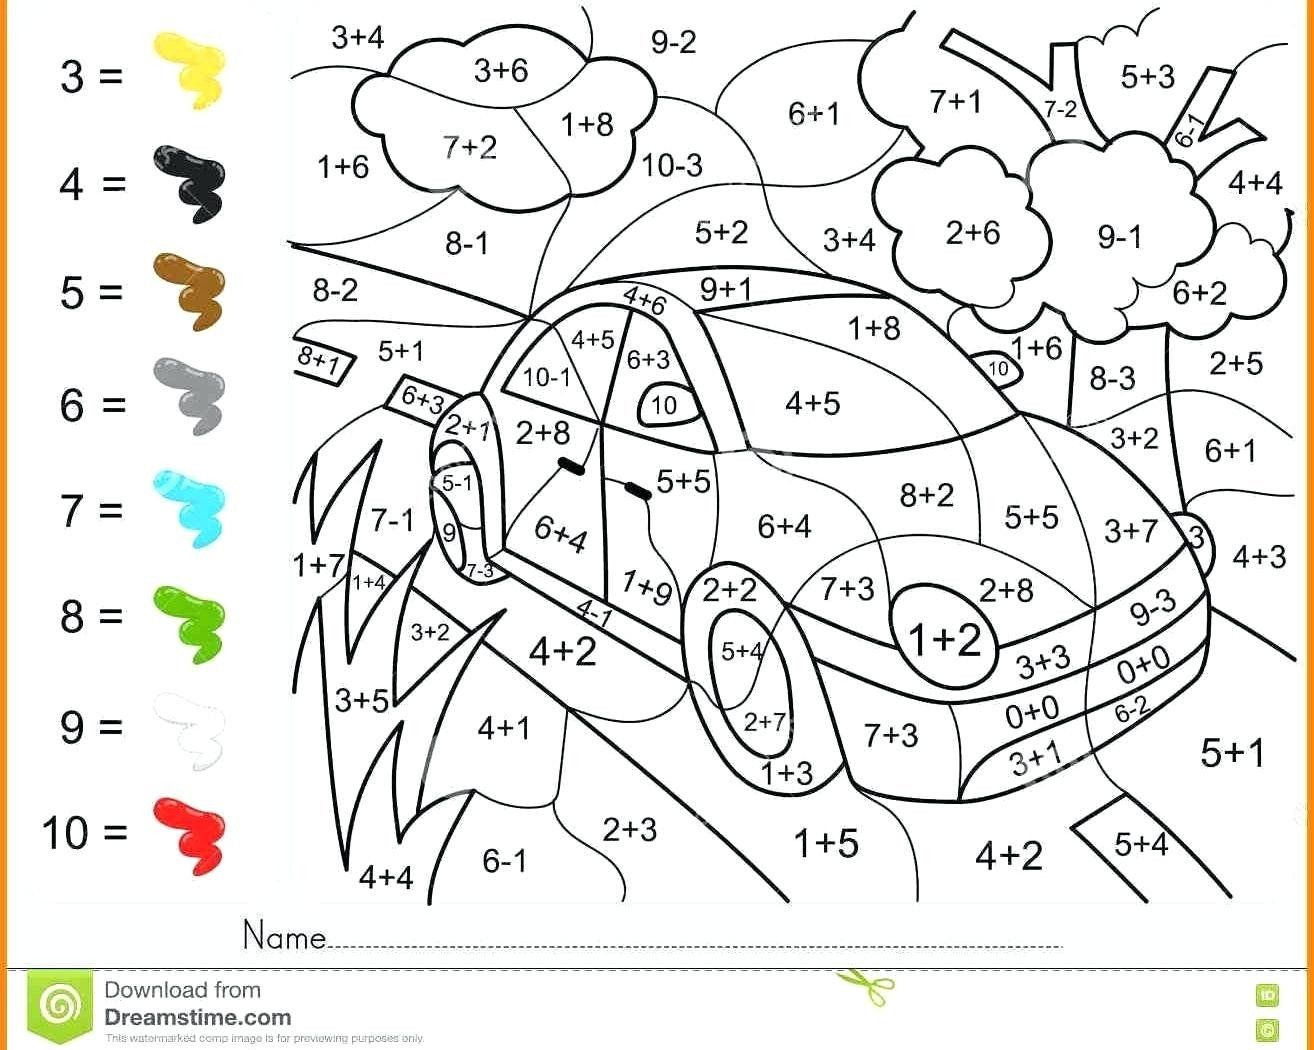 2nd Grade Coloring Pages Unique Printable Math Coloring Worksheets 2n Addition Coloring Worksheet Coloring Worksheets For Kindergarten Math Coloring Worksheets [ 1050 x 1314 Pixel ]